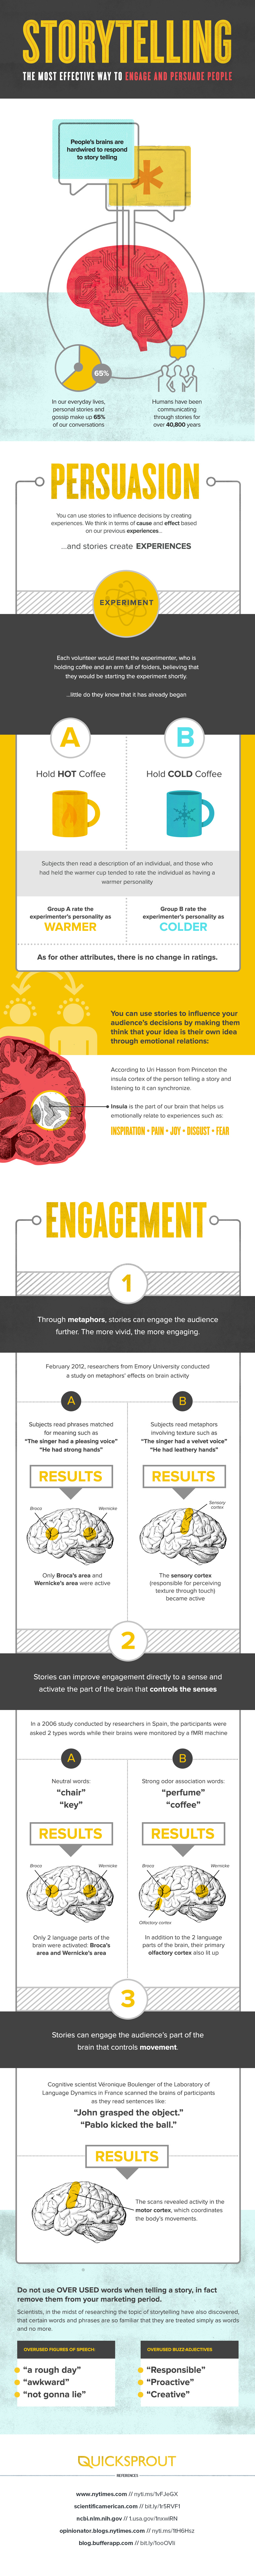 Storytelling -  Engage and Persuade People